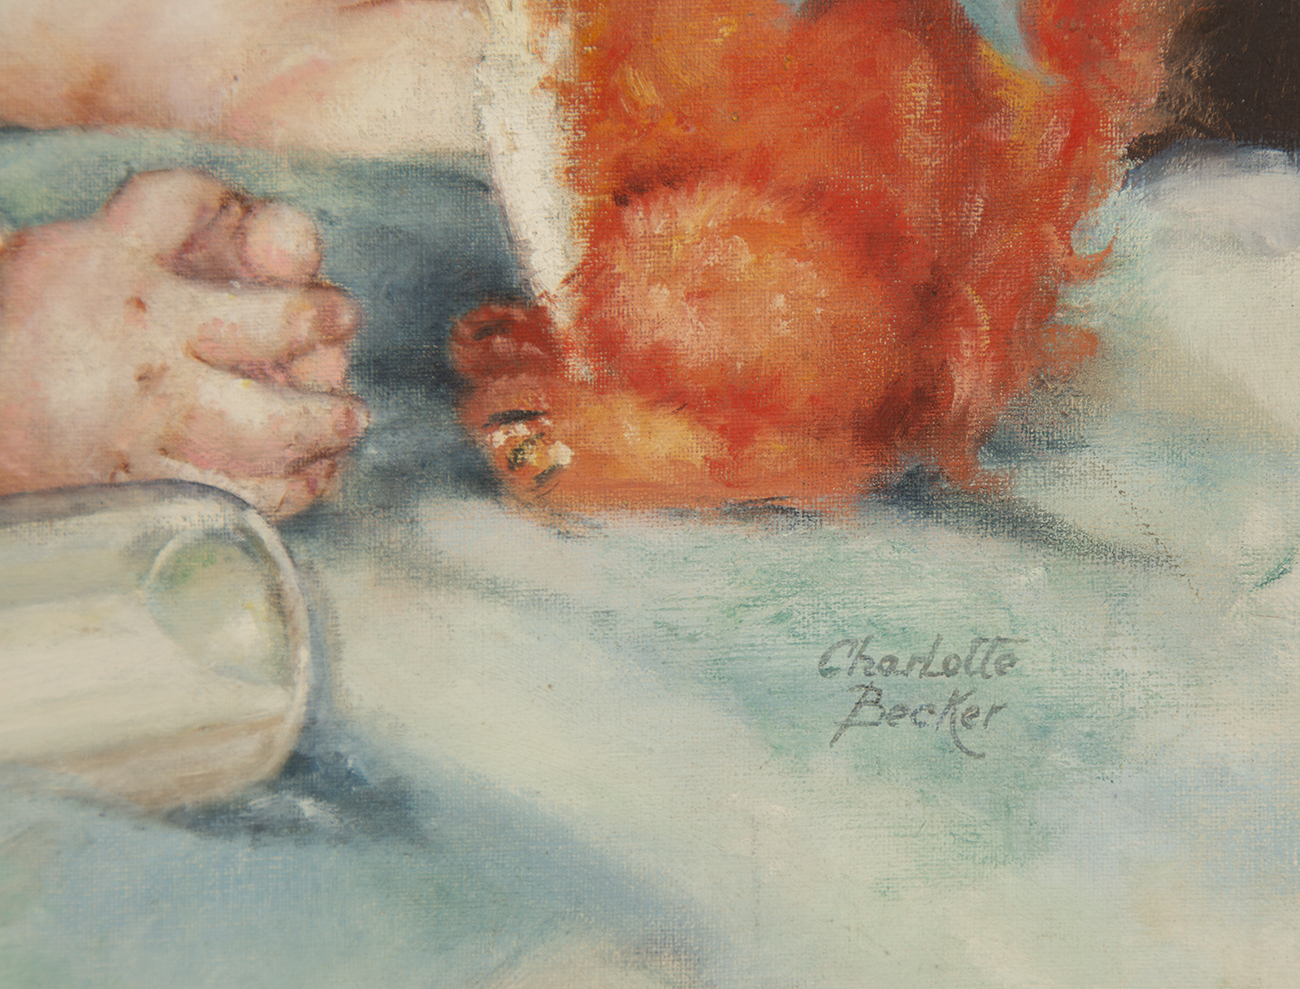 A detail view of the artist's signature in the lower right of the painting